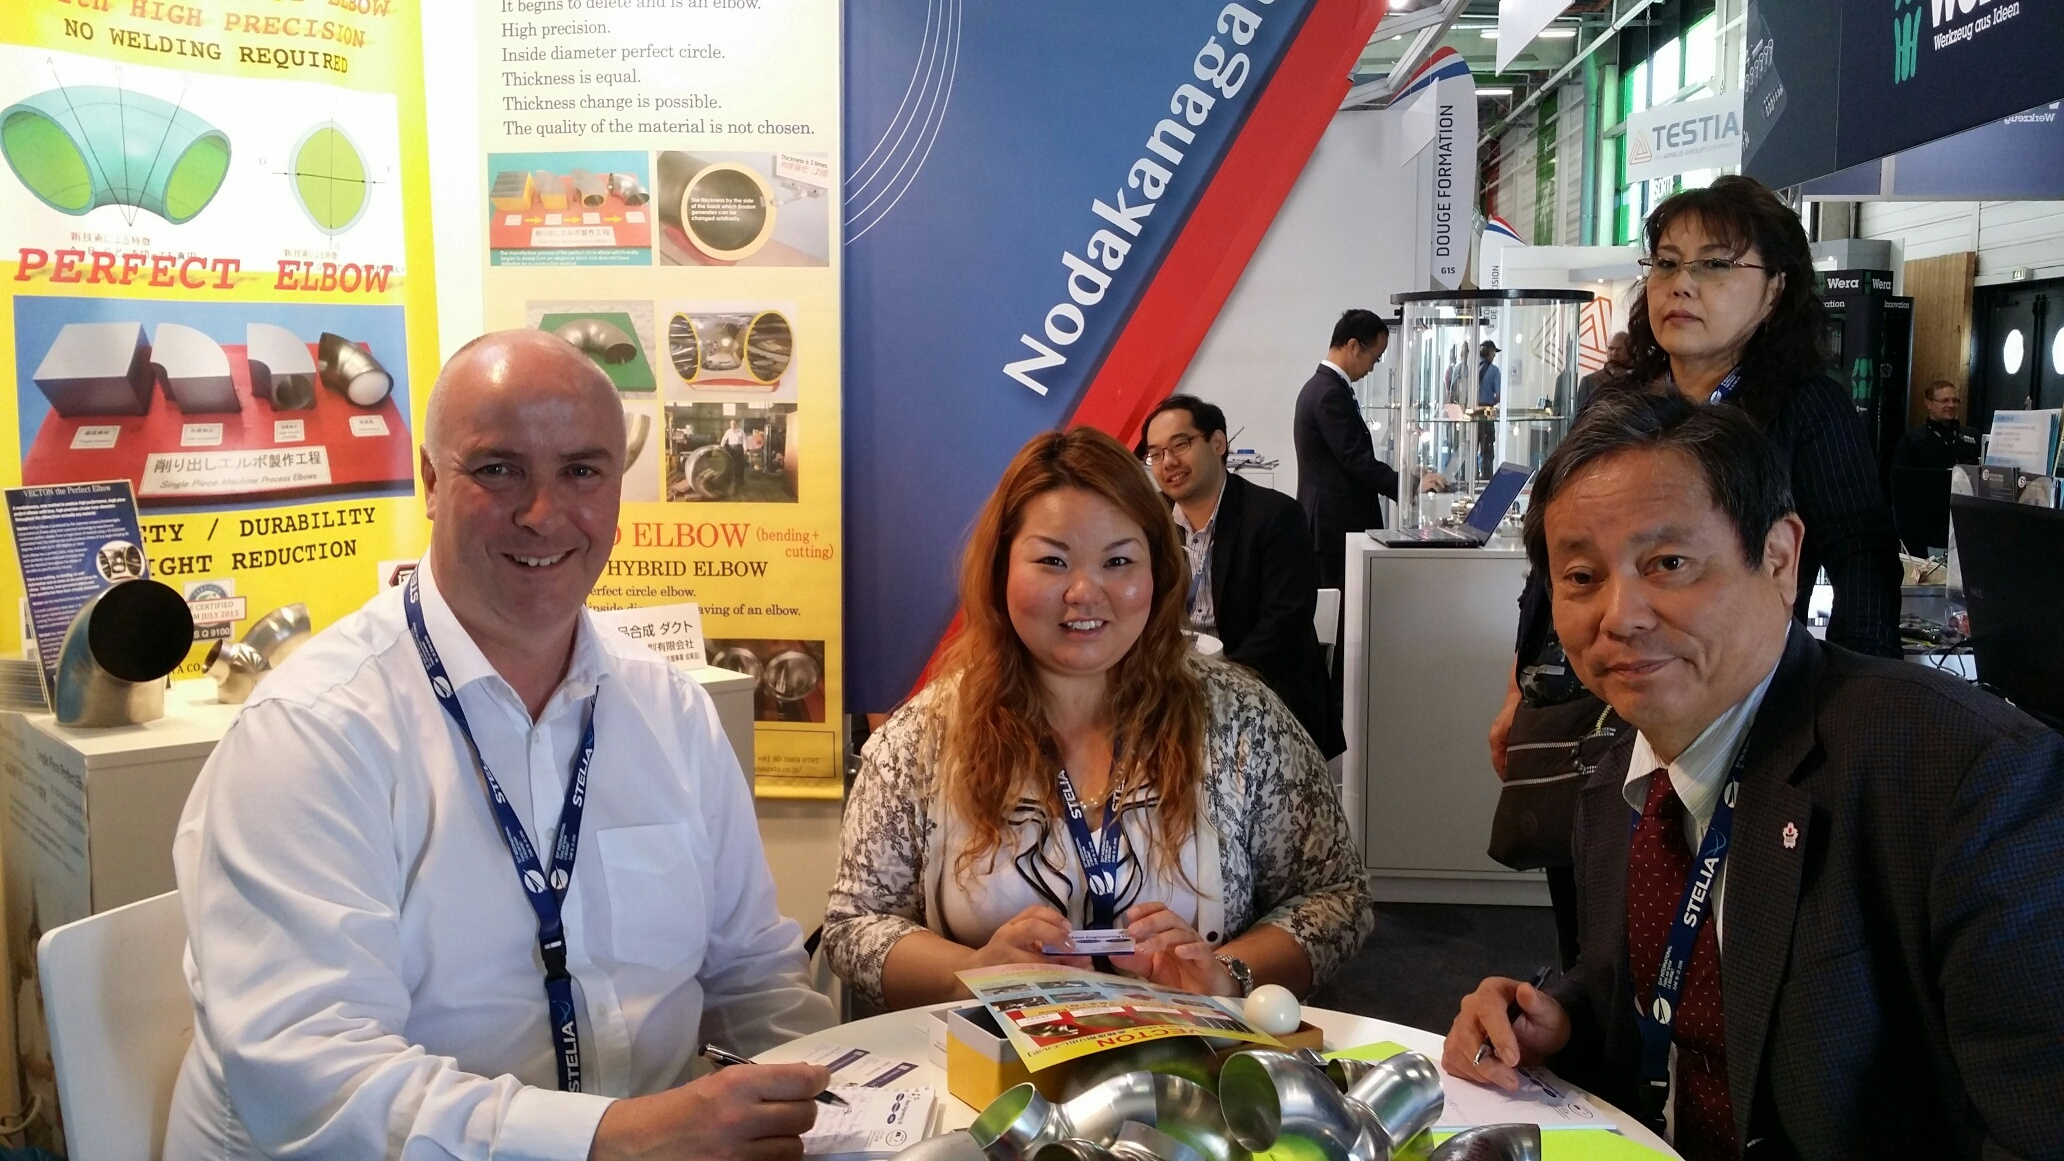 Meeting with a company from Japan